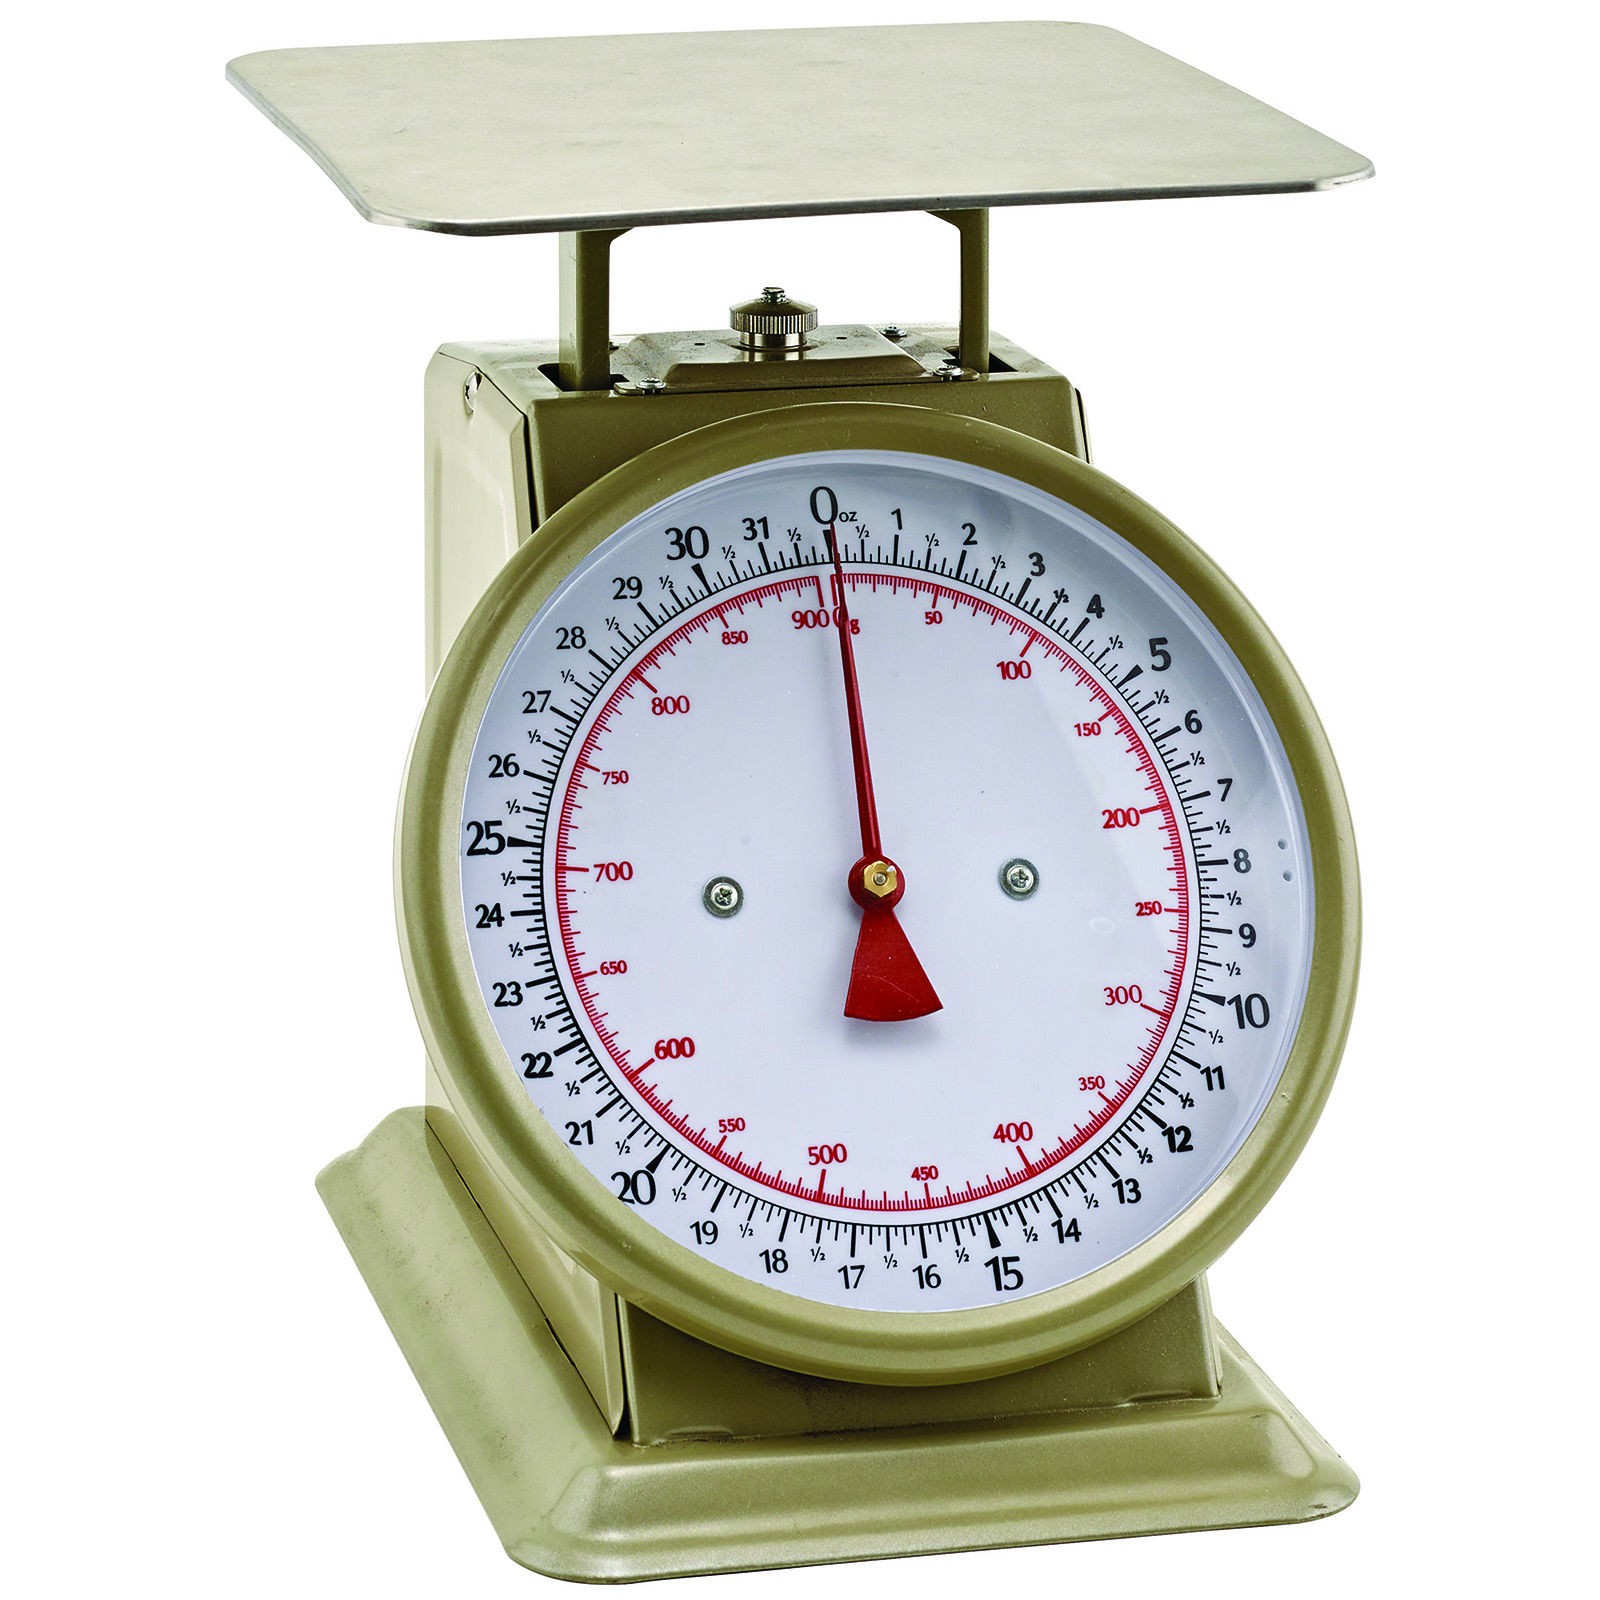 2903-36 Winco SCLH-50 scale, portion, dial